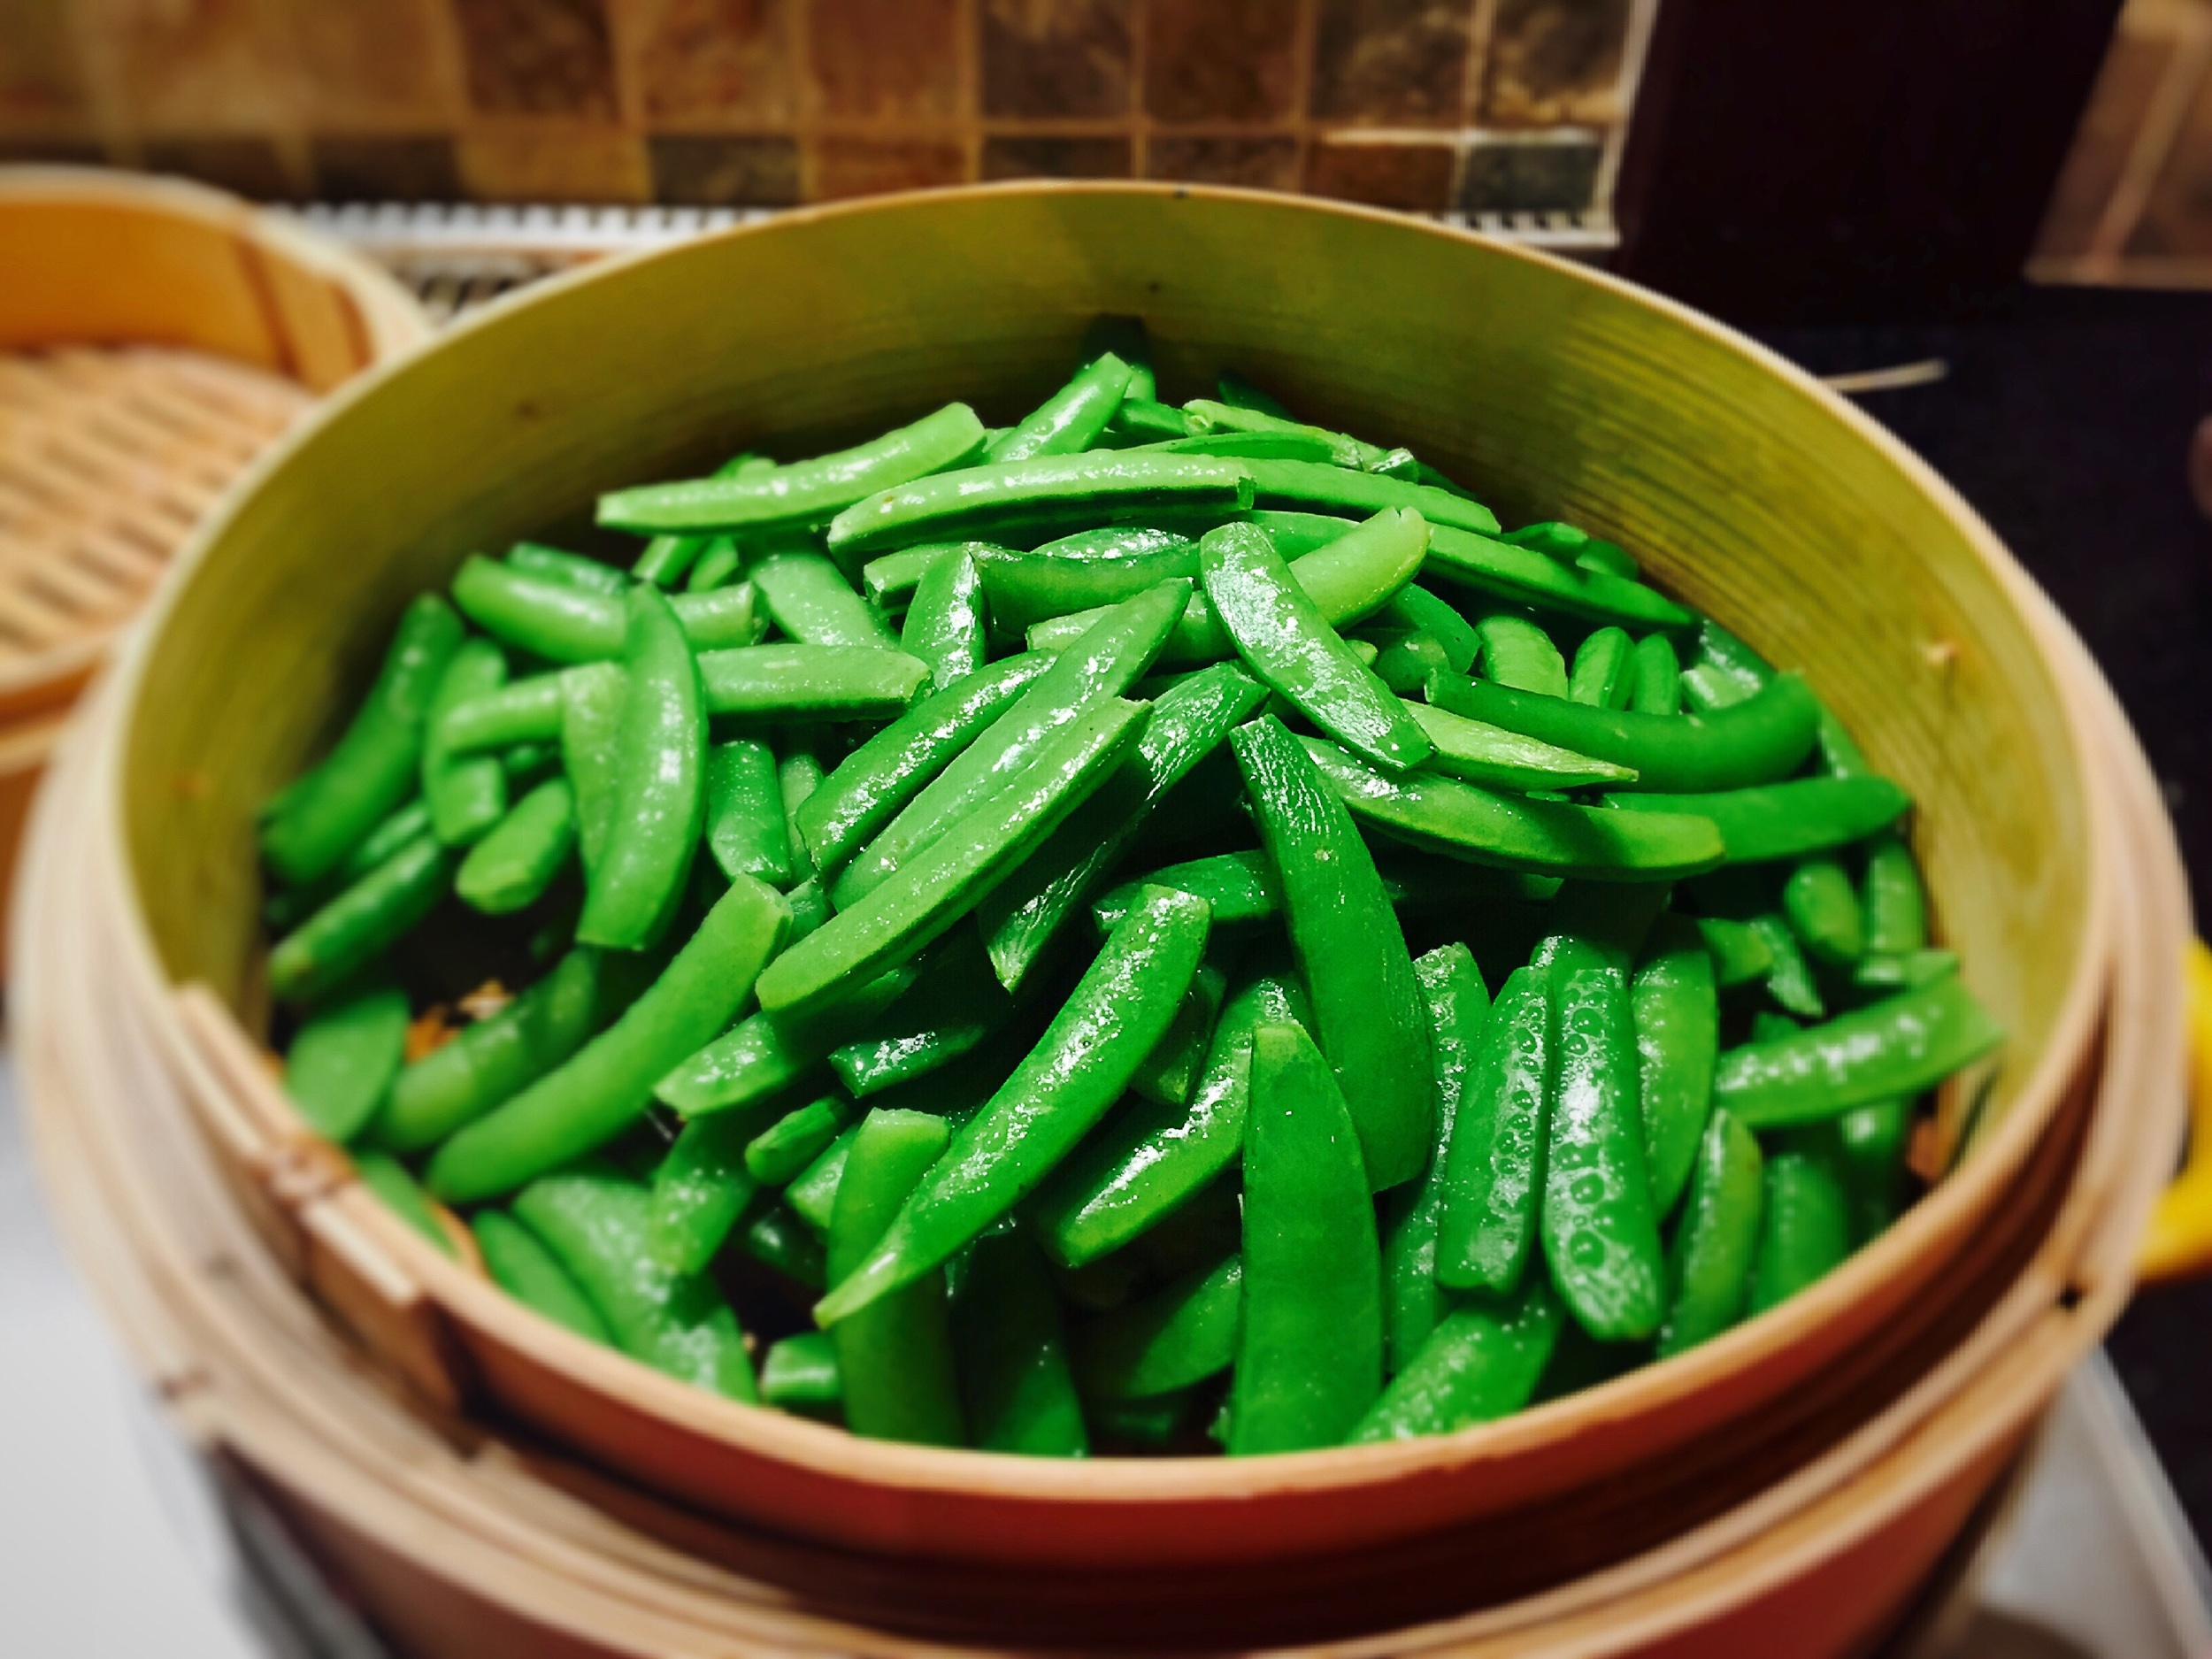 1. Rinse the sugar snap peas and snip the ends from both sides.  2. Place them in your  bamboo steamer , cover, and place over boiling water for approximately 3-4 minutes.   3. Uncover, remove from heat and sprinkle with  Coarse Pink Himalayan Salt (or  Kosher salt )to taste.